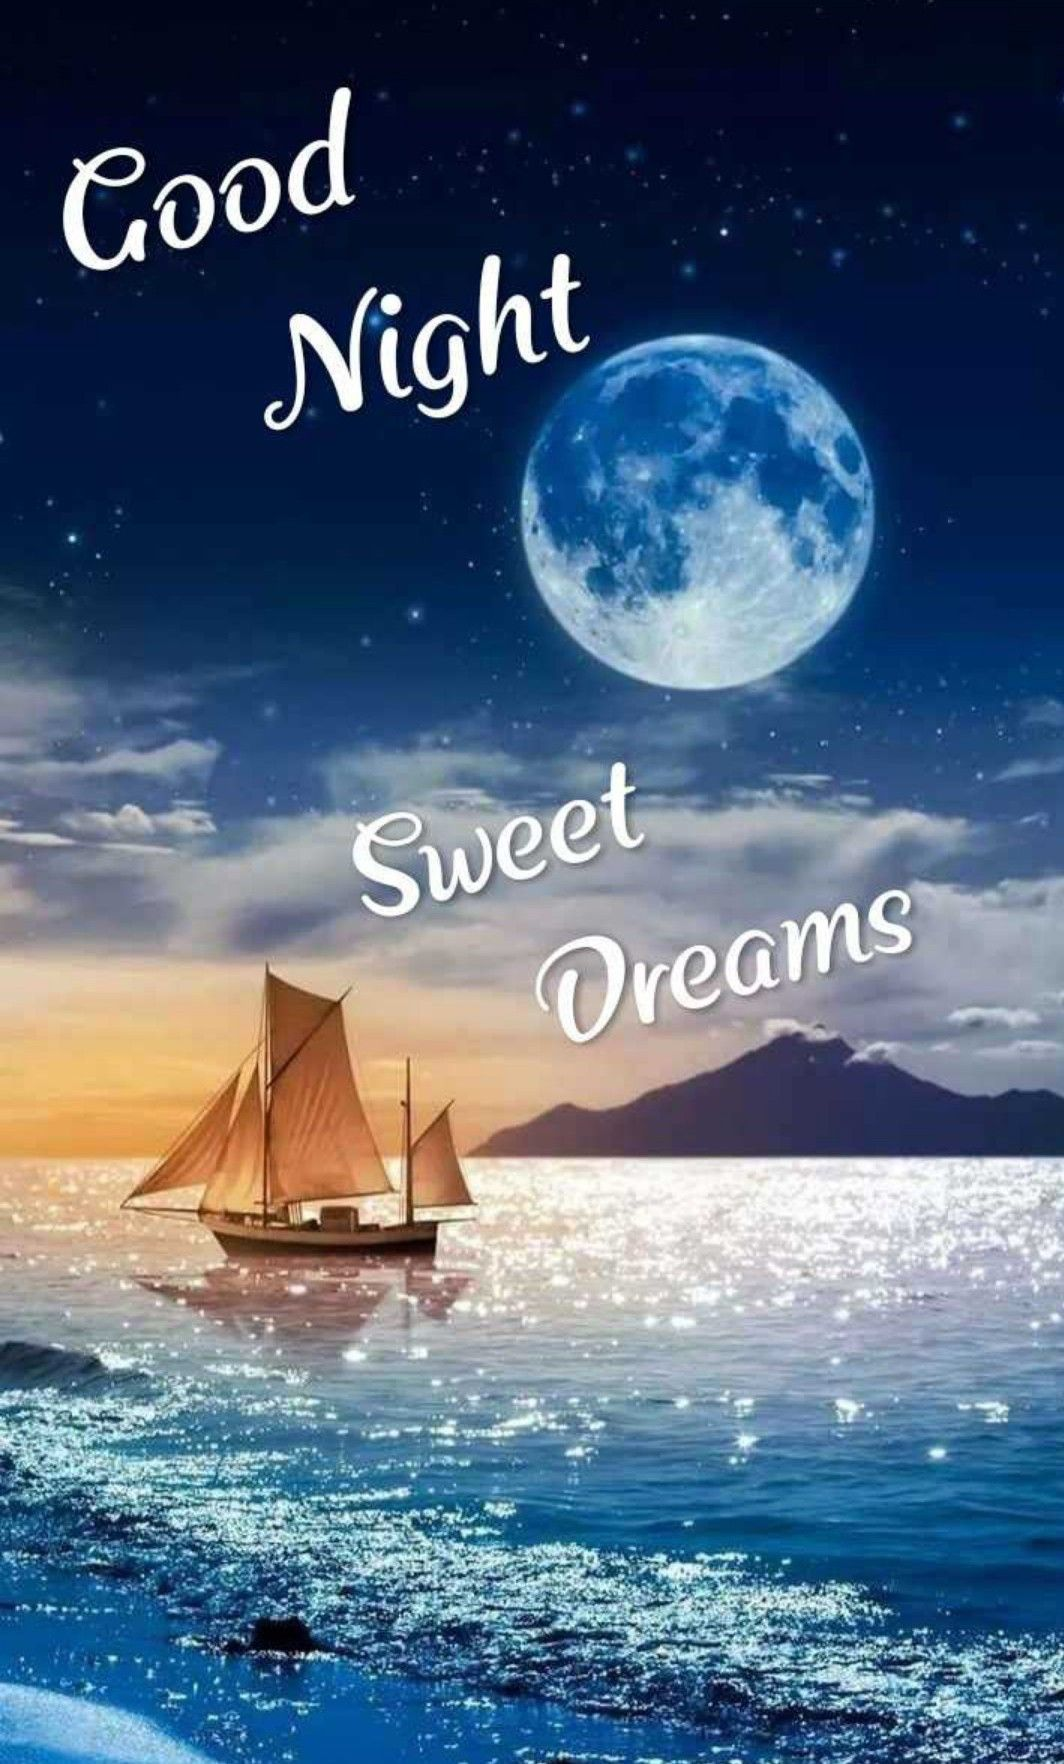 Pin By Crystal Rae On Wishes Good Night Image Good Night Wallpaper Good Night Sister